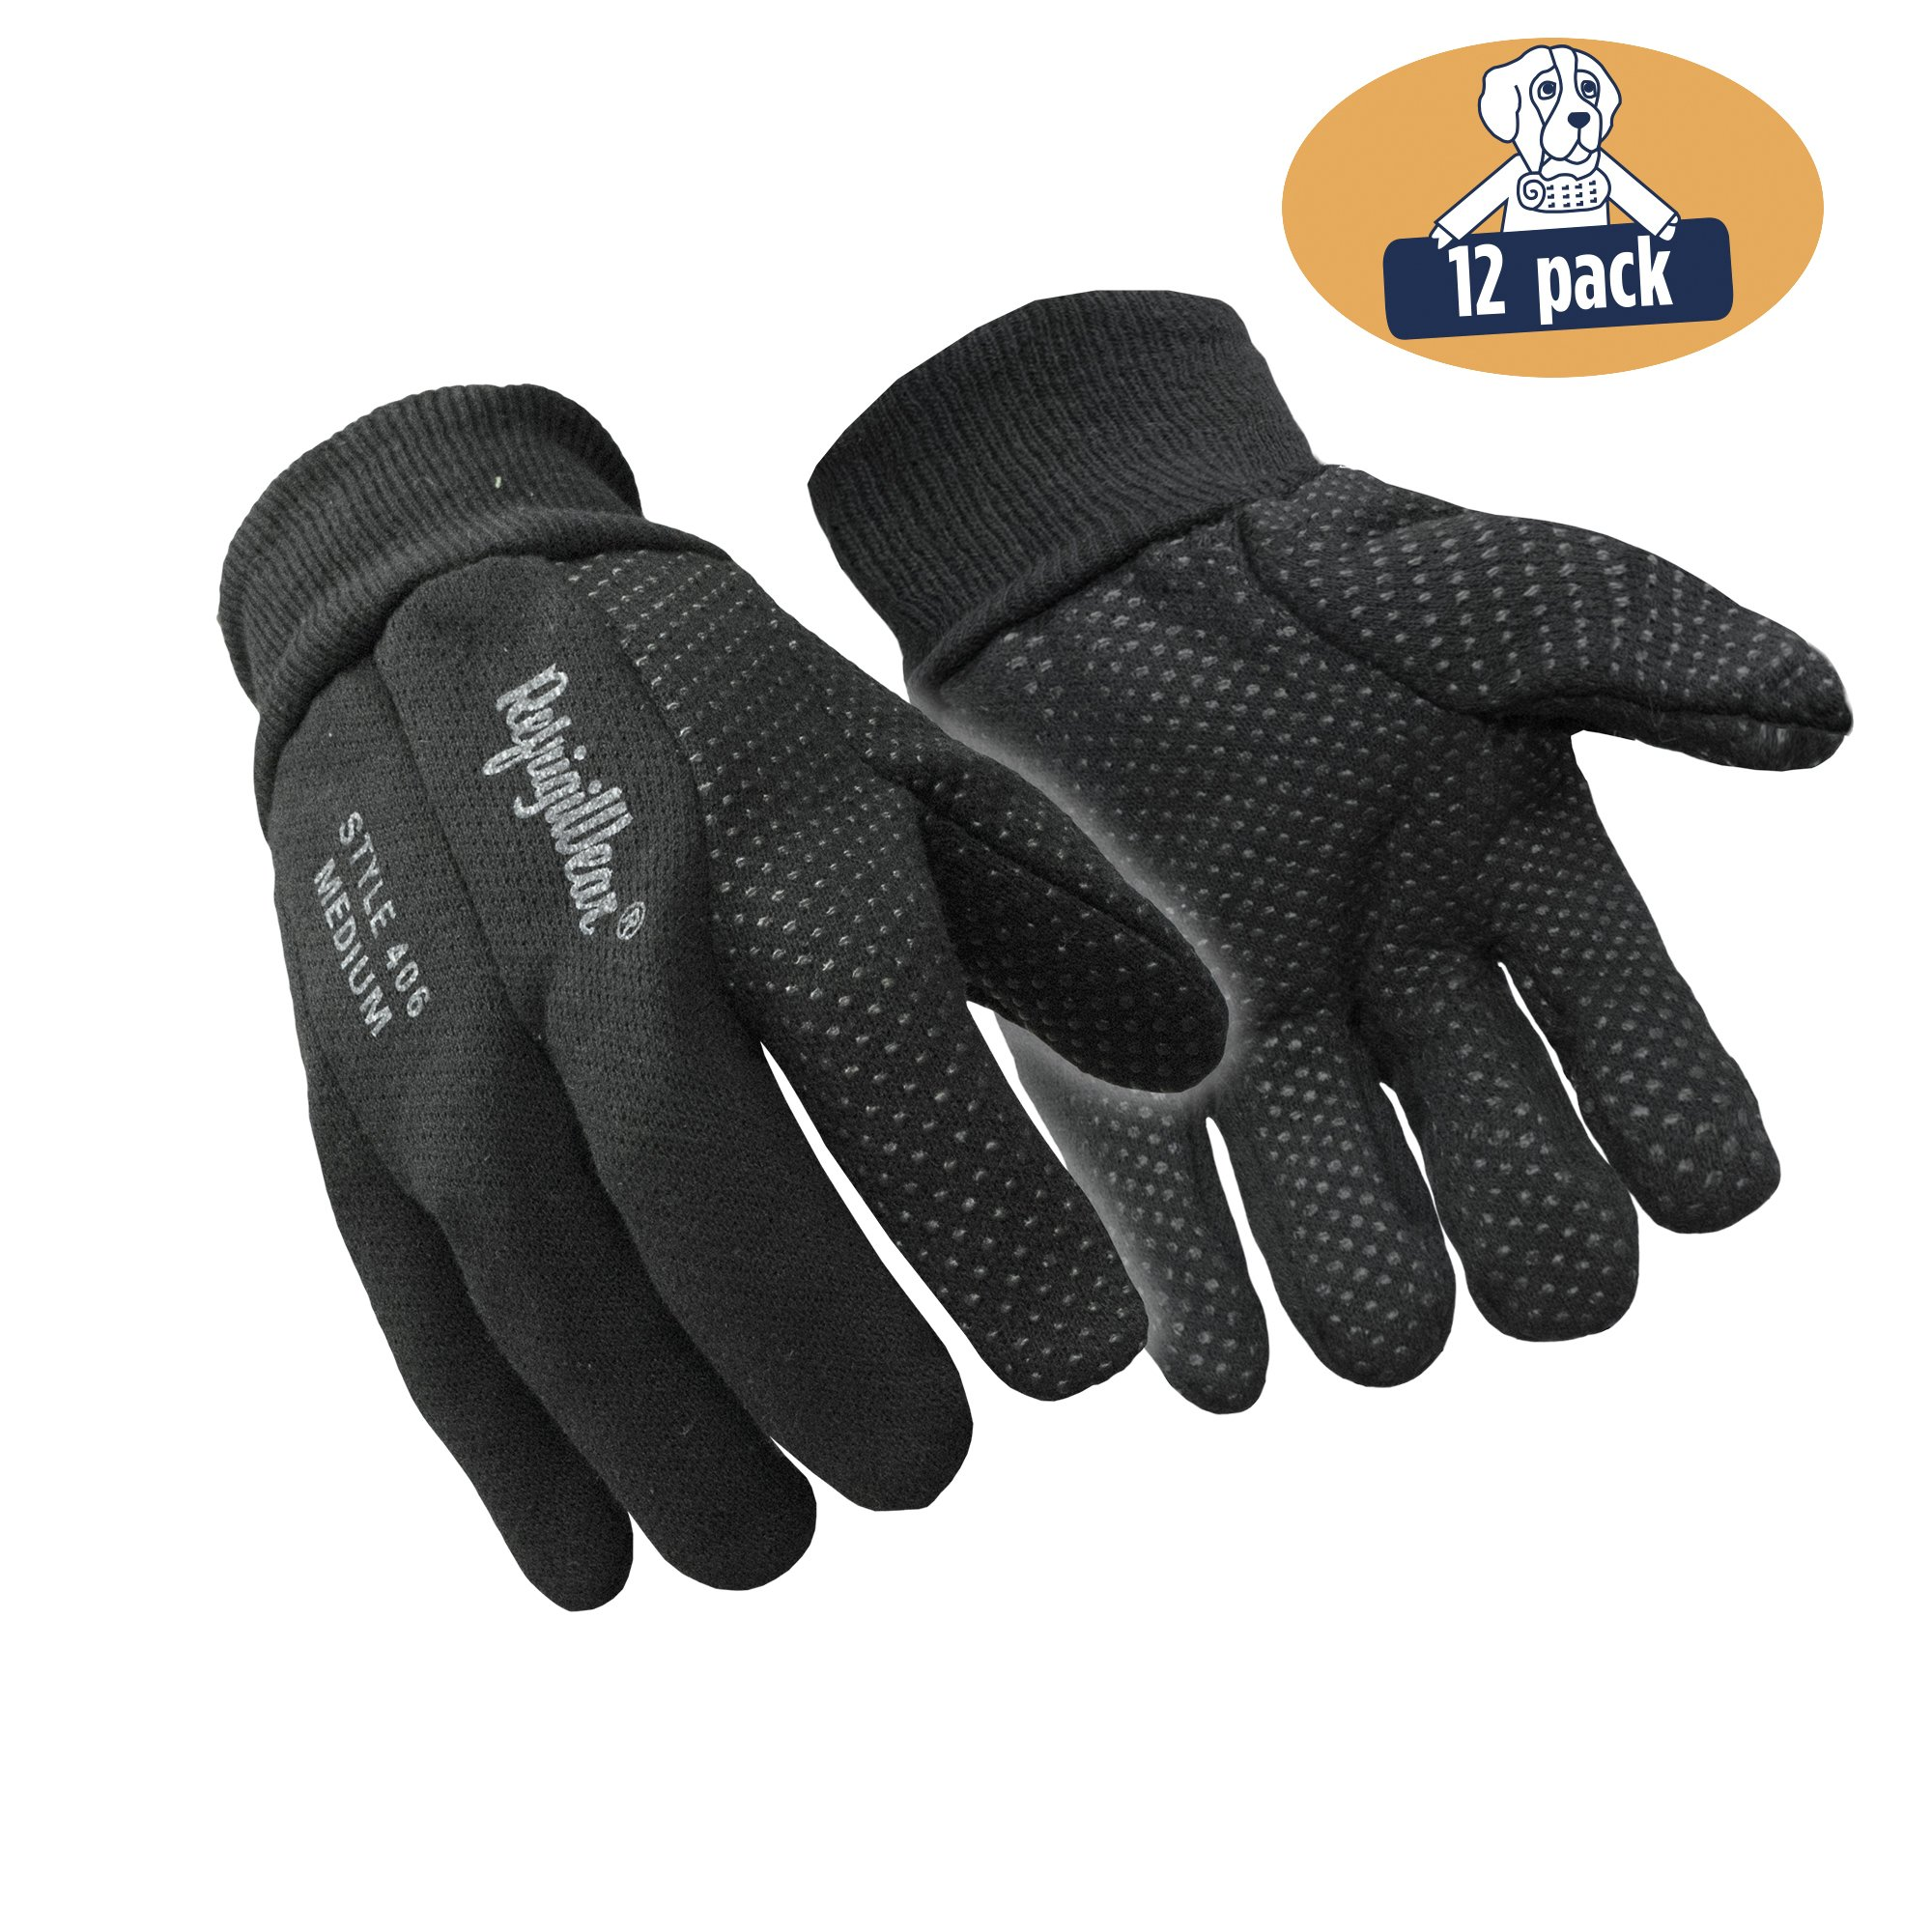 RefrigiWear Premium Insulated Cotton Jersey Knit Work Gloves with PVC Dotted Grip, Pack of 12 Pairs (Black, X-Large)